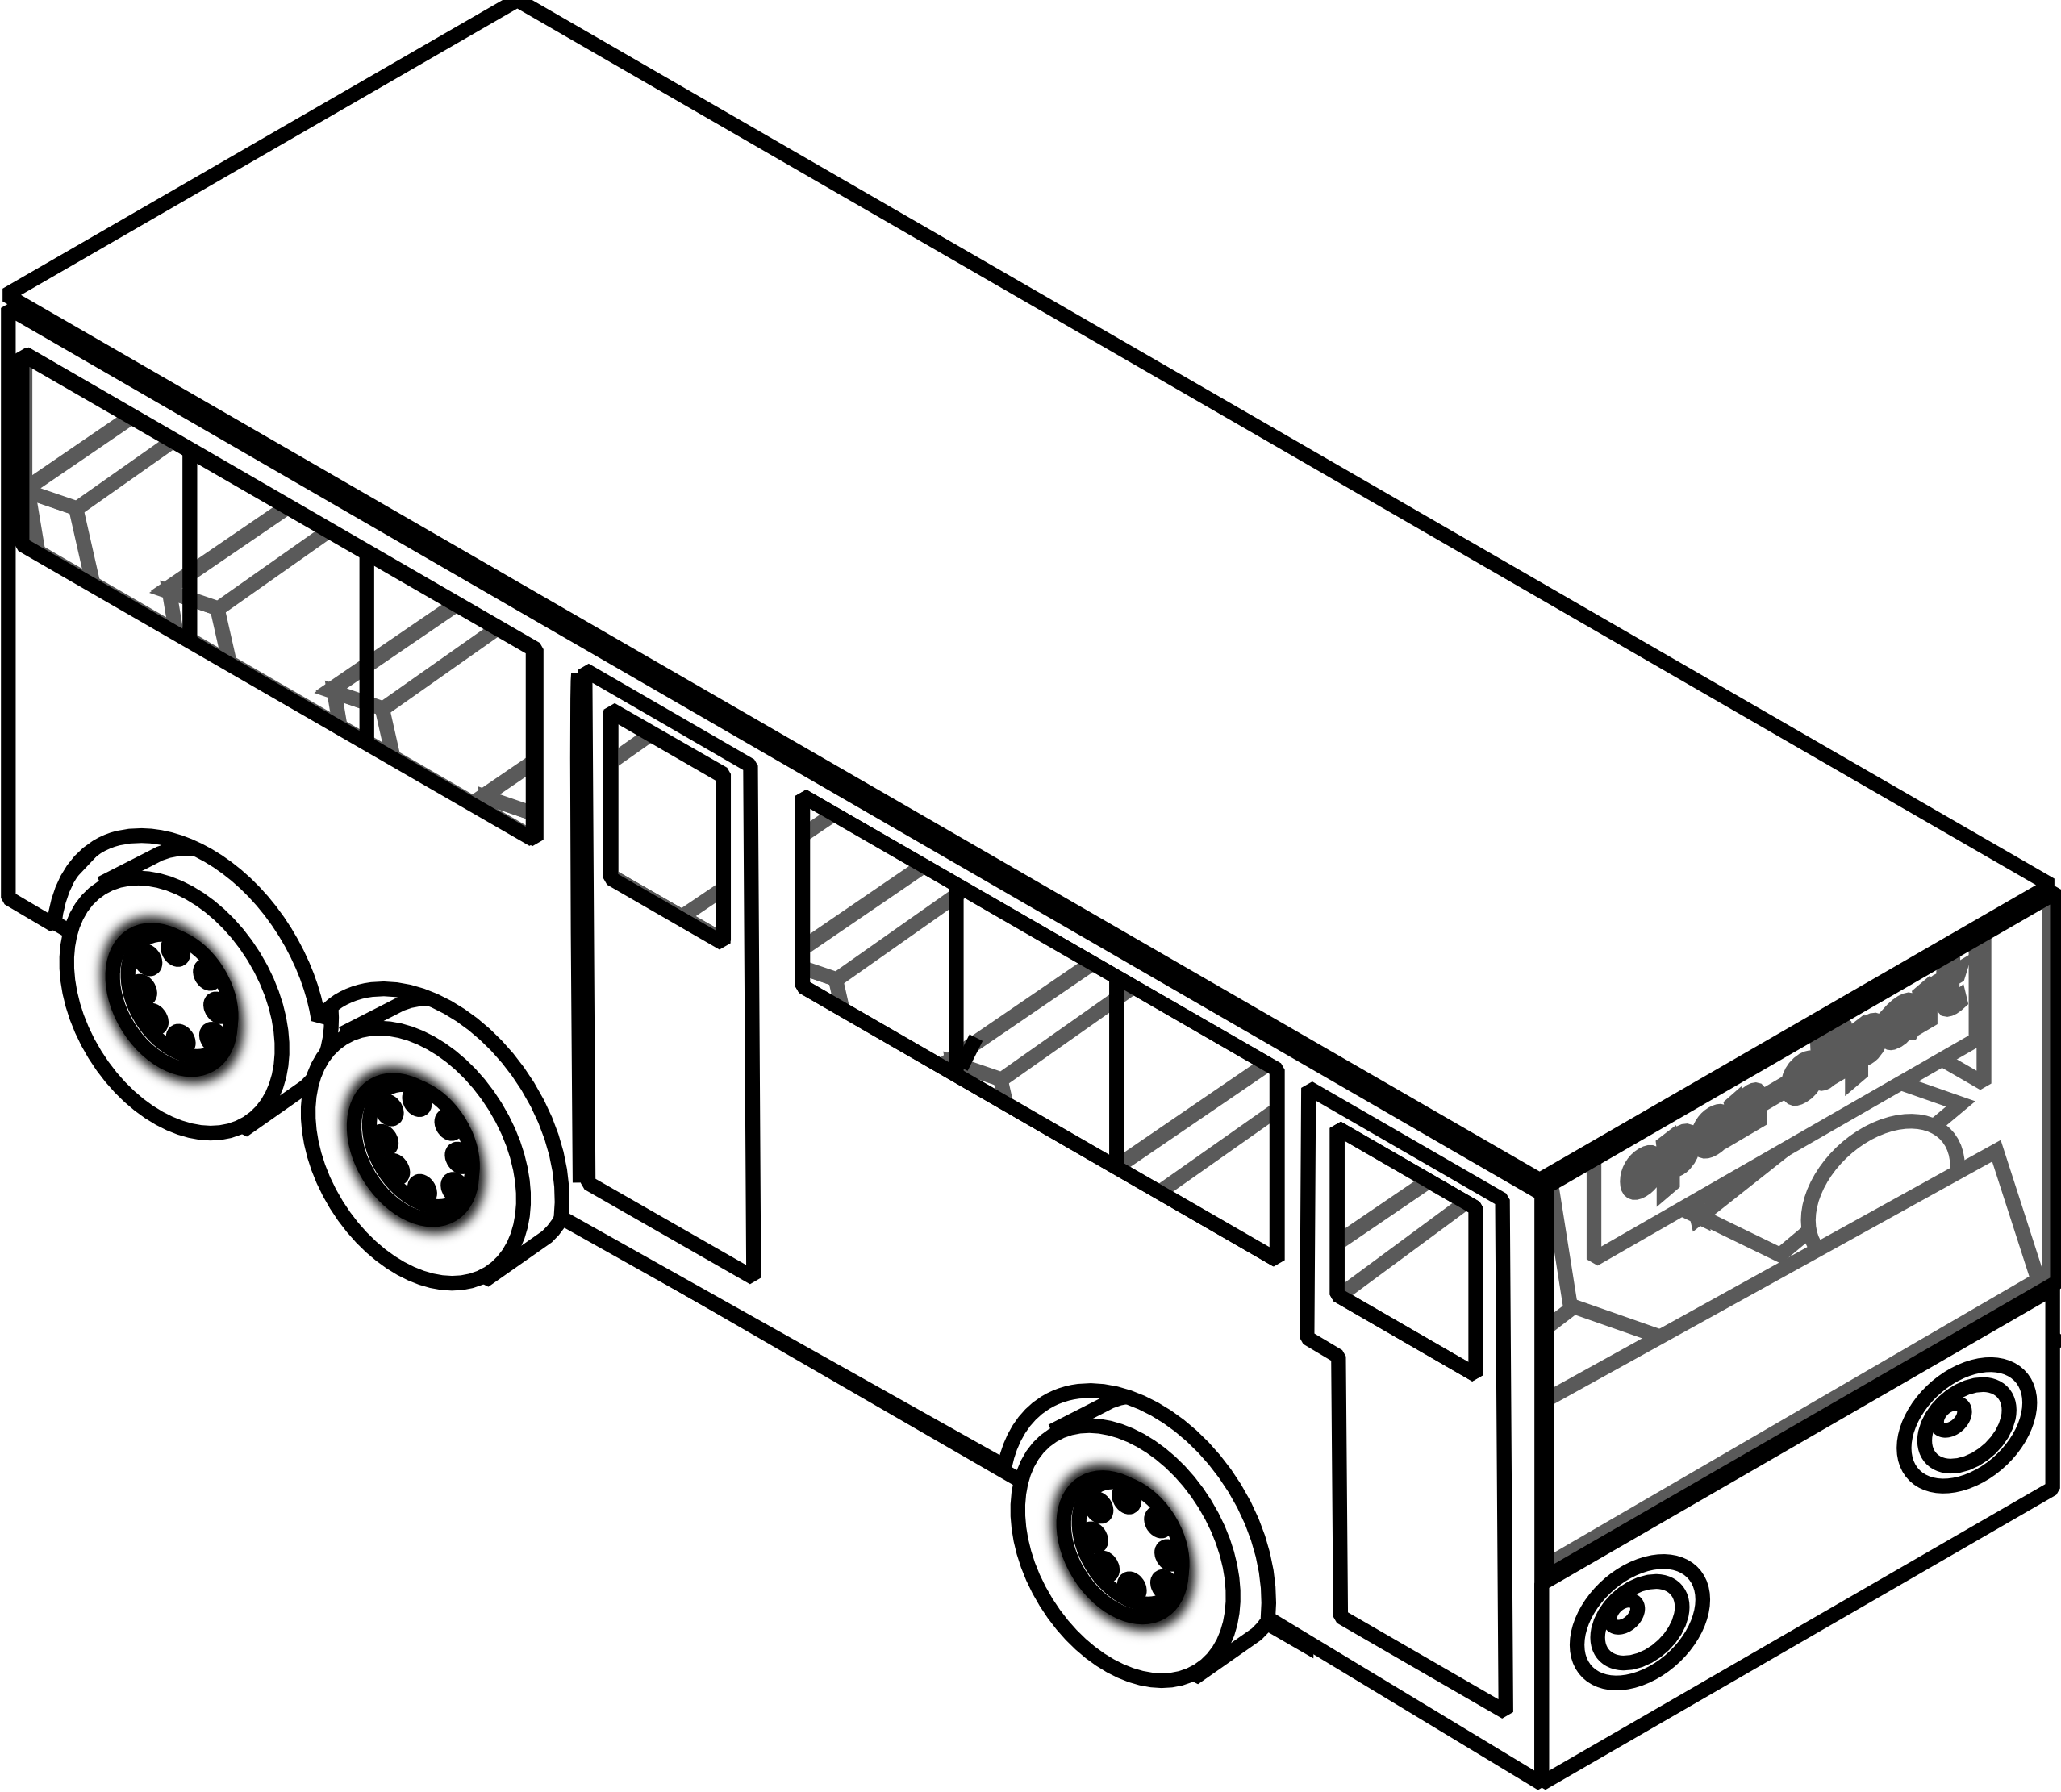 Clipart of a bus black and white clip transparent download Bus black and white bus clipart black and white free images ... clip transparent download